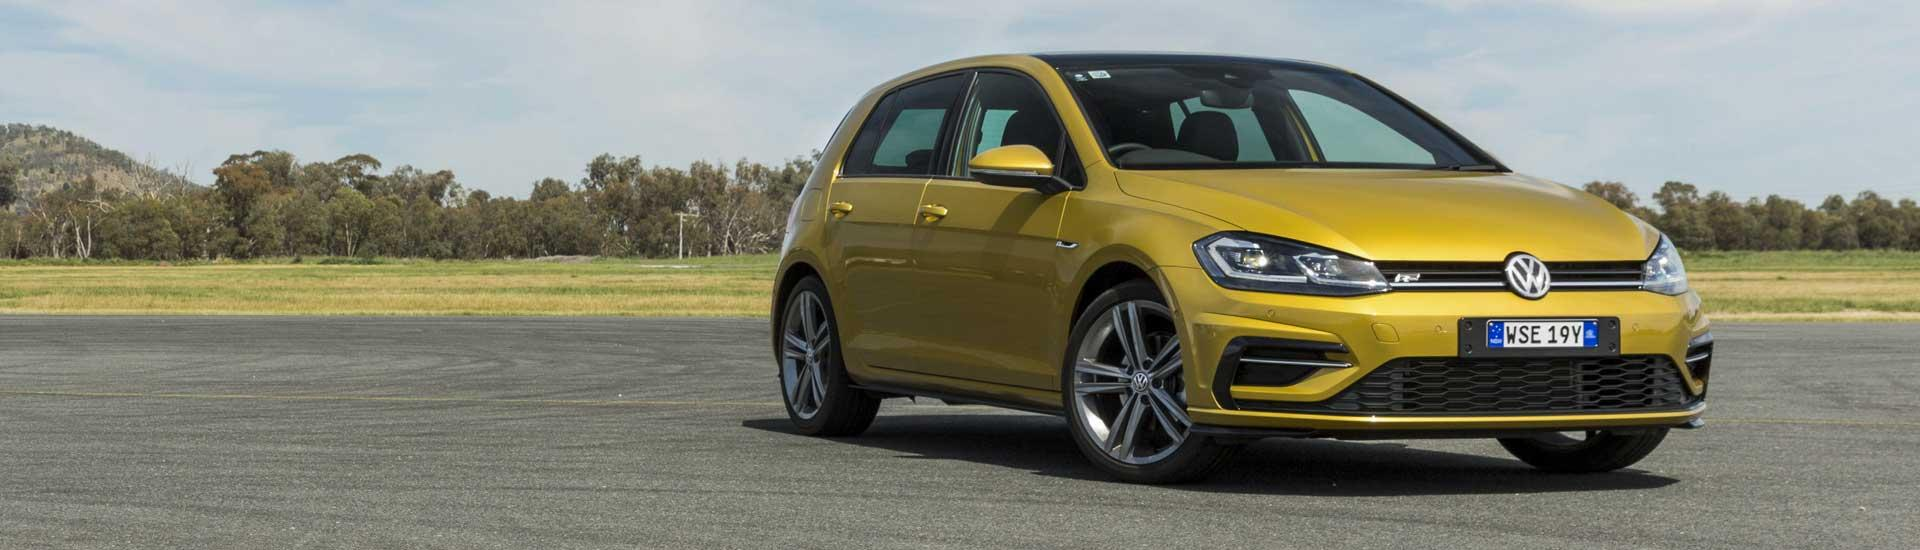 The Volkswagen Golf Wins Best City Car In The Carsales Car Of The